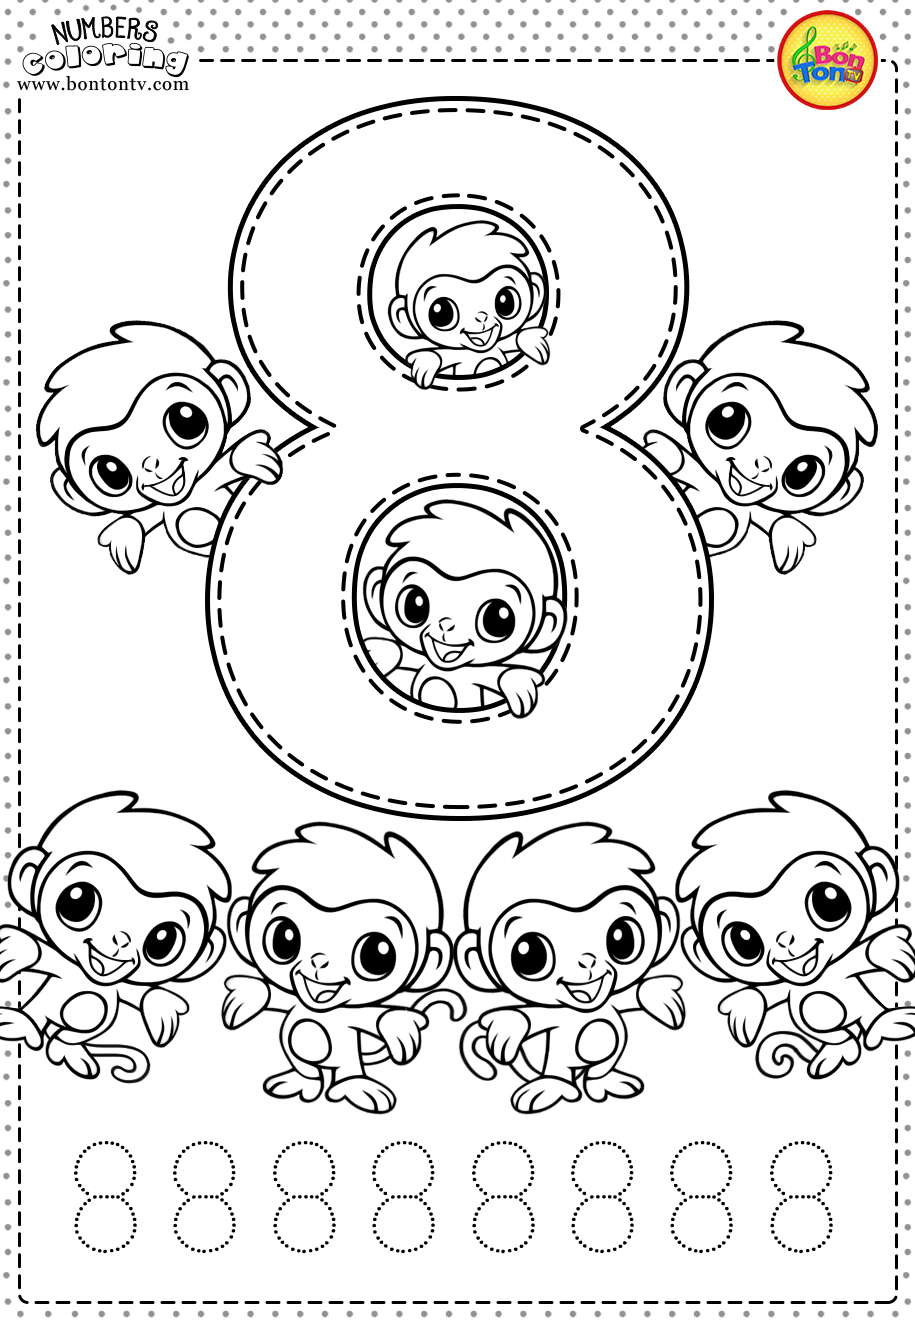 7 Coloring Activity Sheets For Students Number 8 Preschool Printables Free Workshe In 2020 Preschool Worksheets Free Printables Numbers Preschool Kids Learning Numbers